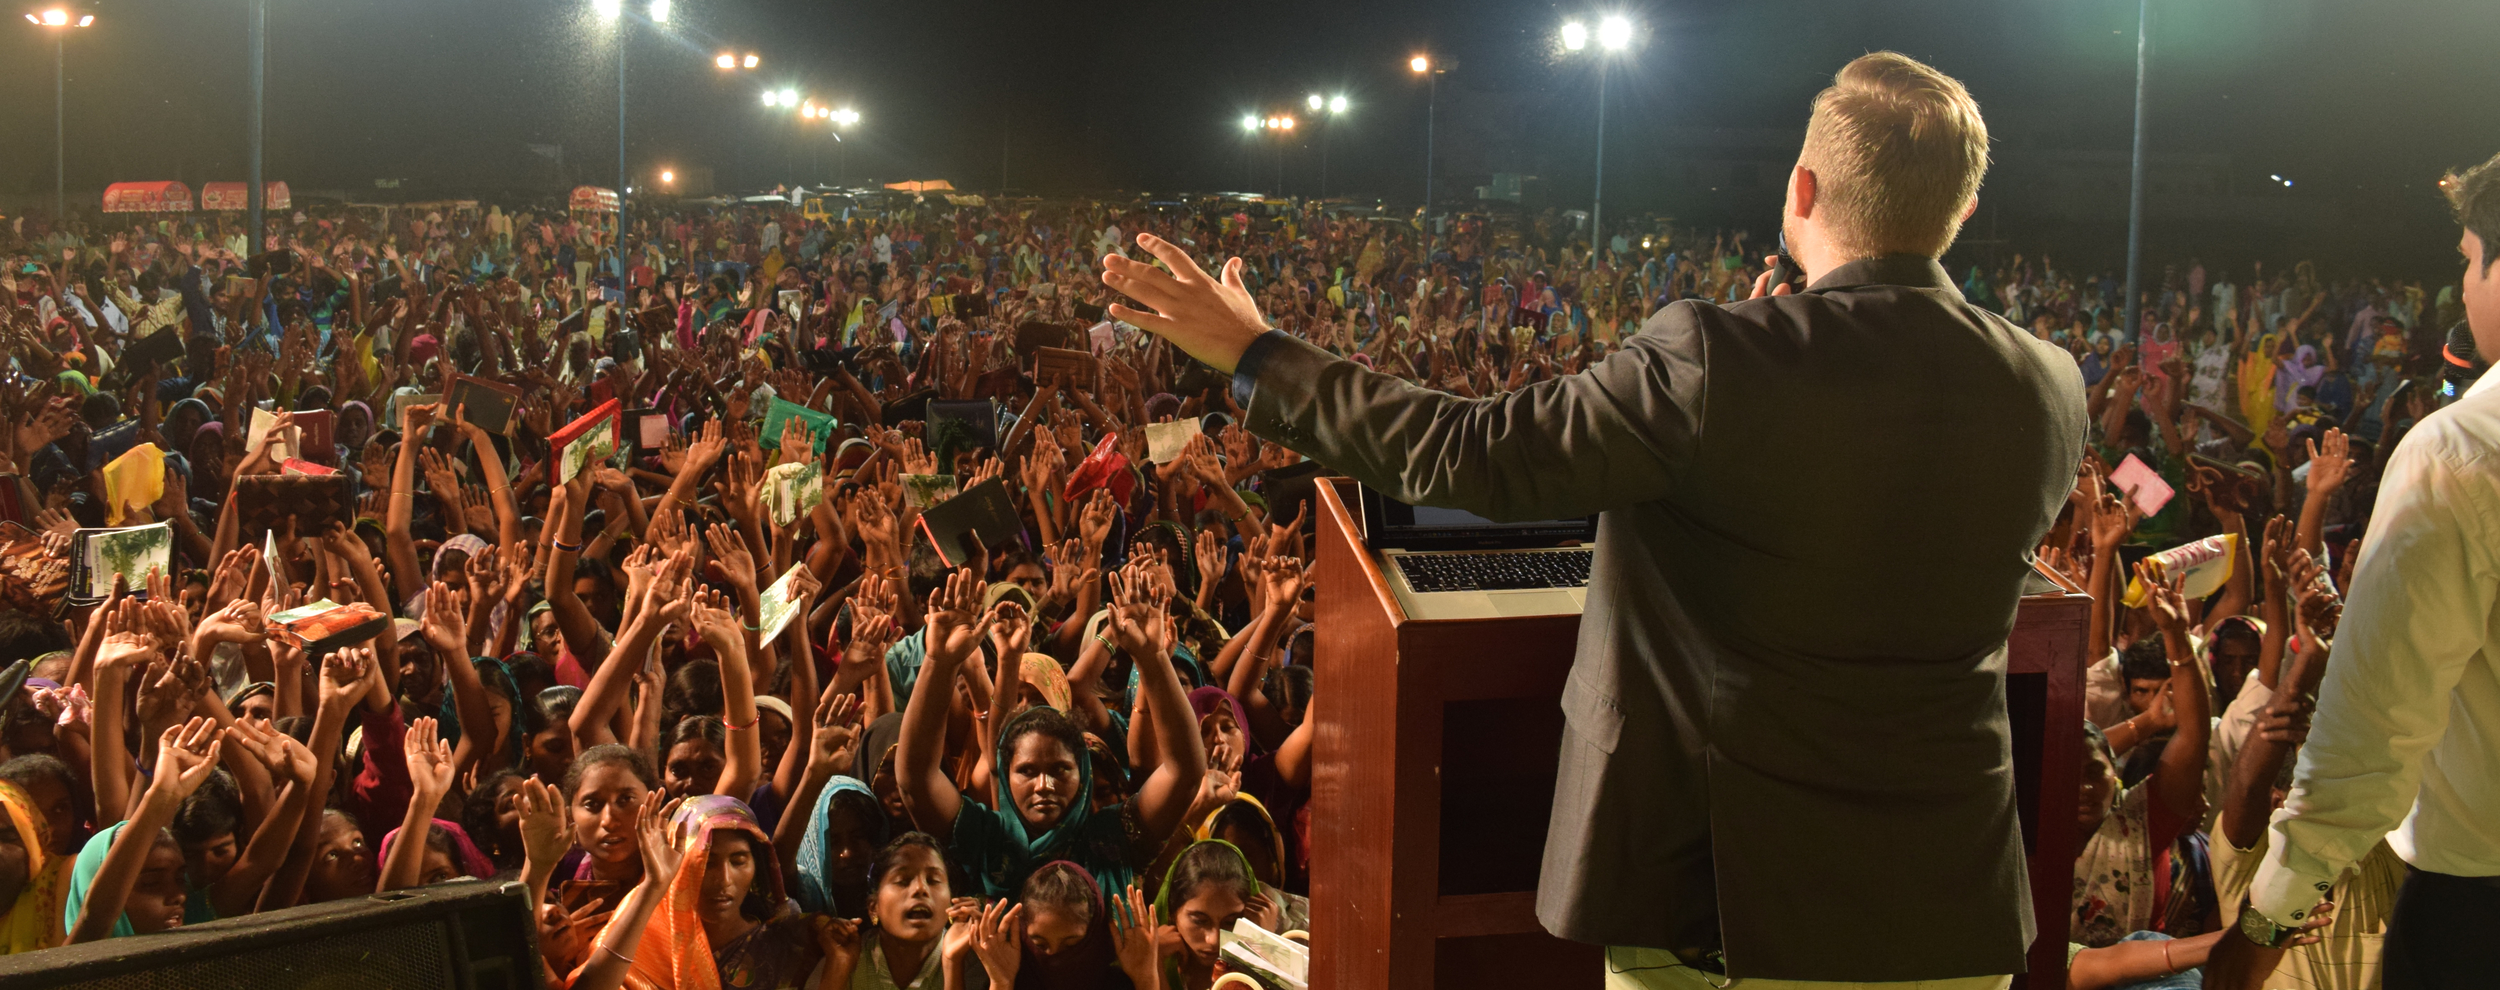 Ministering the last night of the crusade